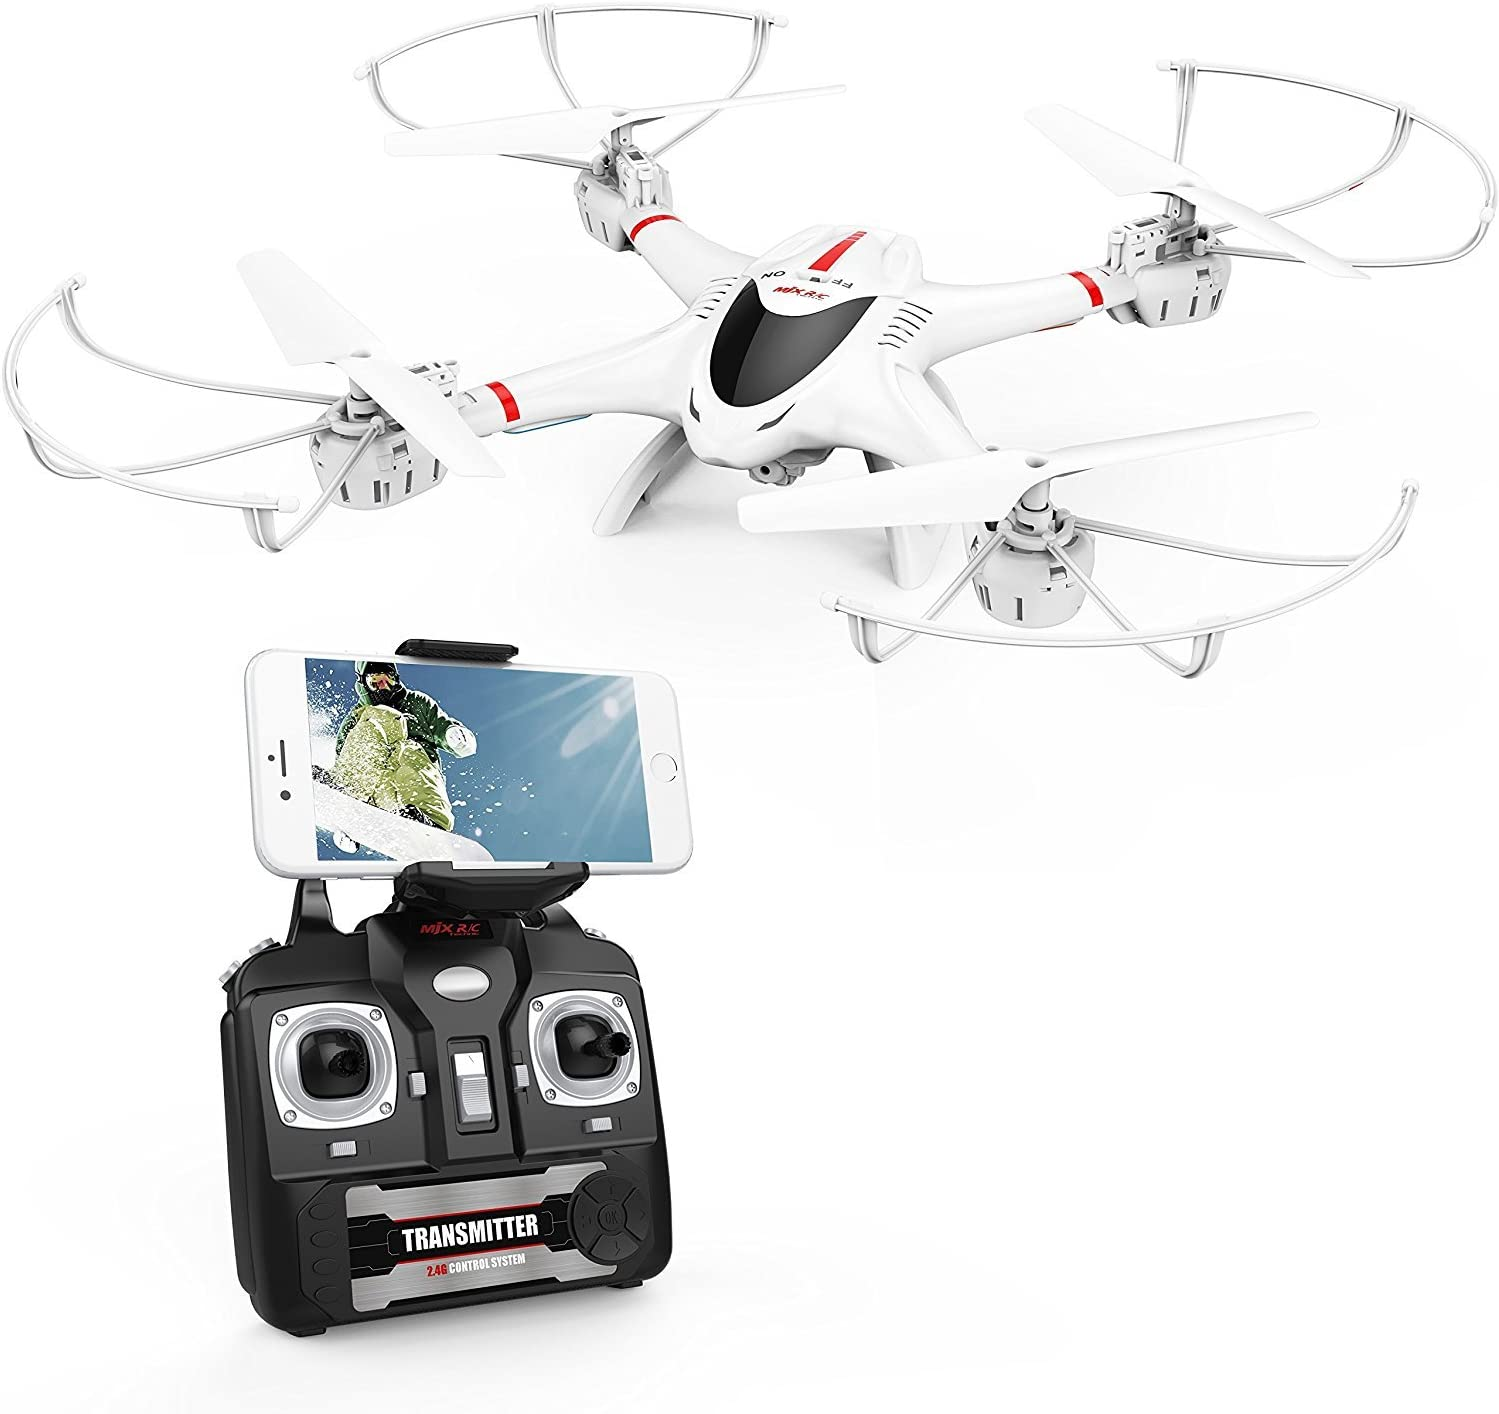 DBPOWER X400W FPV Quadcopter is at #13 for best drones under 50 dollars